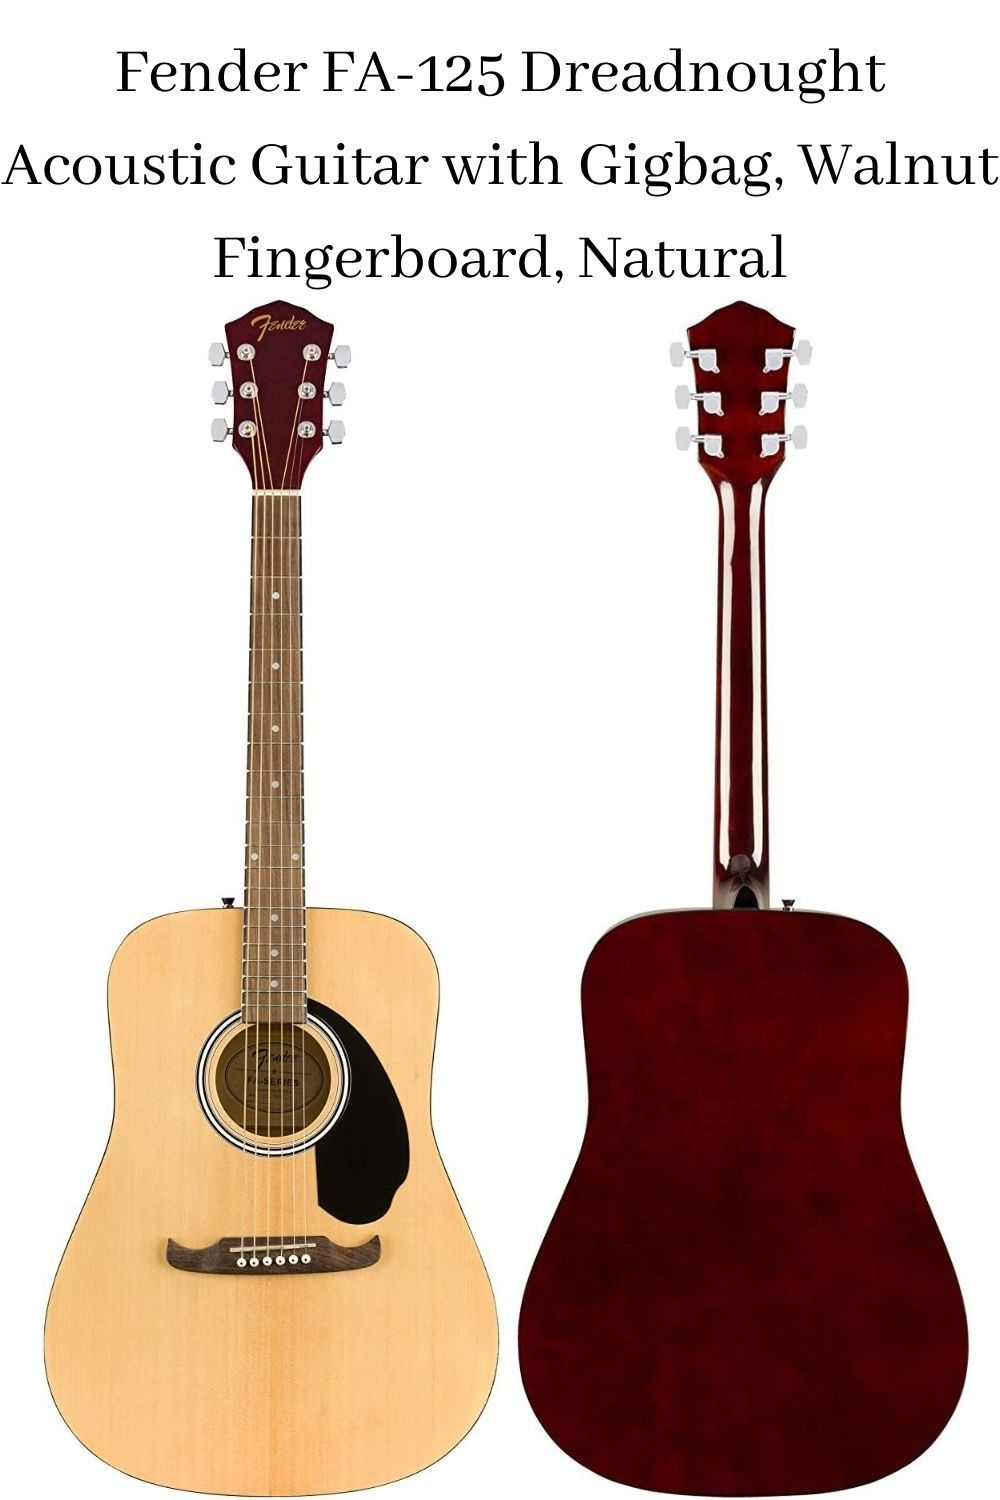 Fender Fa 125 Dreadnought Acoustic Guitar With Gigbag Walnut Fingerboard Natural Guitar Types Of Guitar Acoustic Guitar